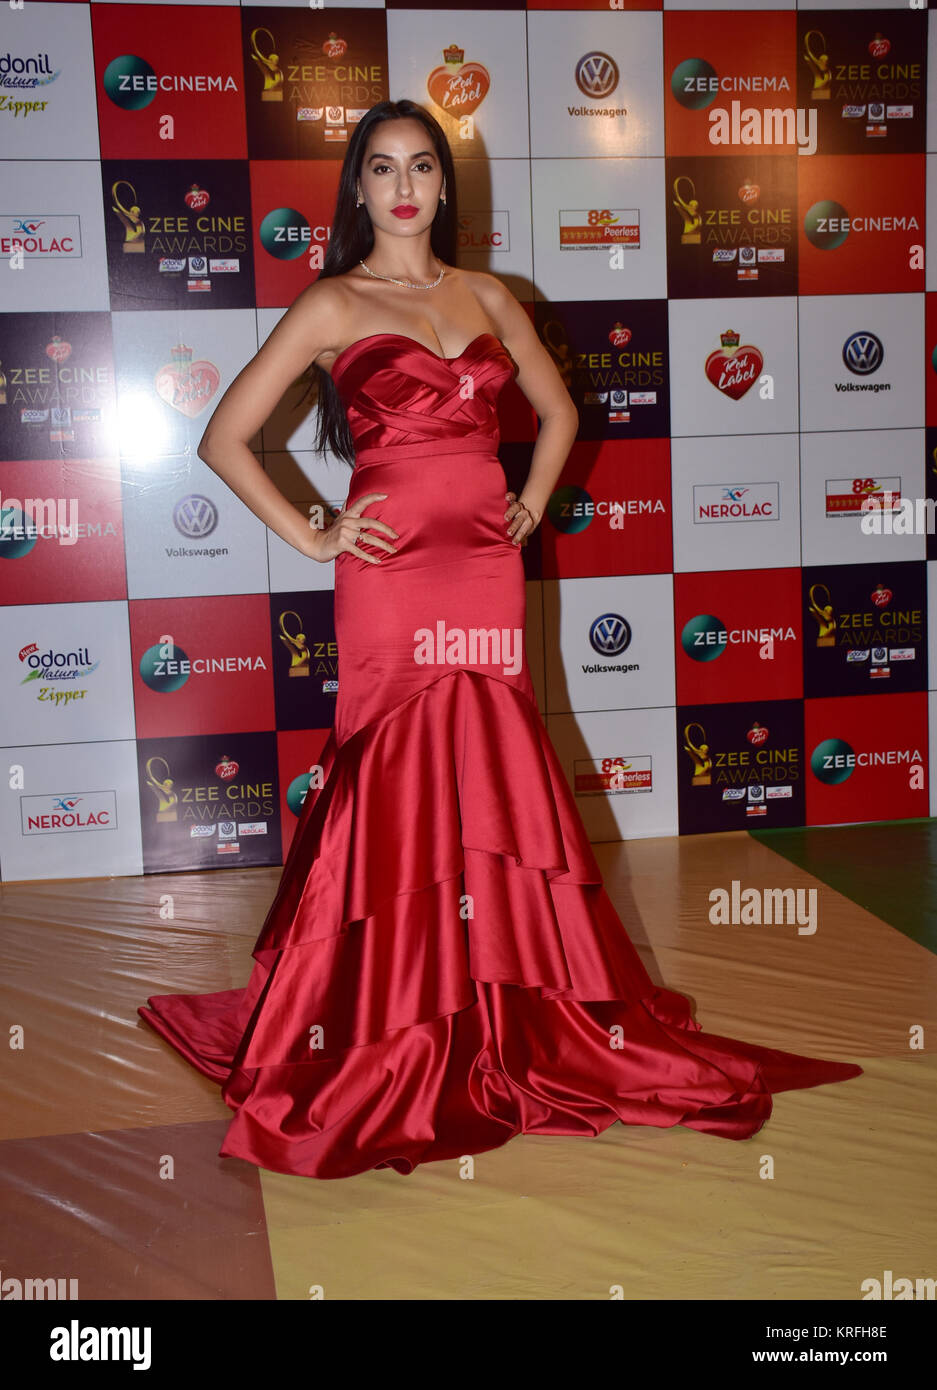 Mumbai, India. 19th Dec, 2017. Canadian model Nora Fatehi attend the Red carpet event of Zee Cine Awards 2018 at Stock Photo